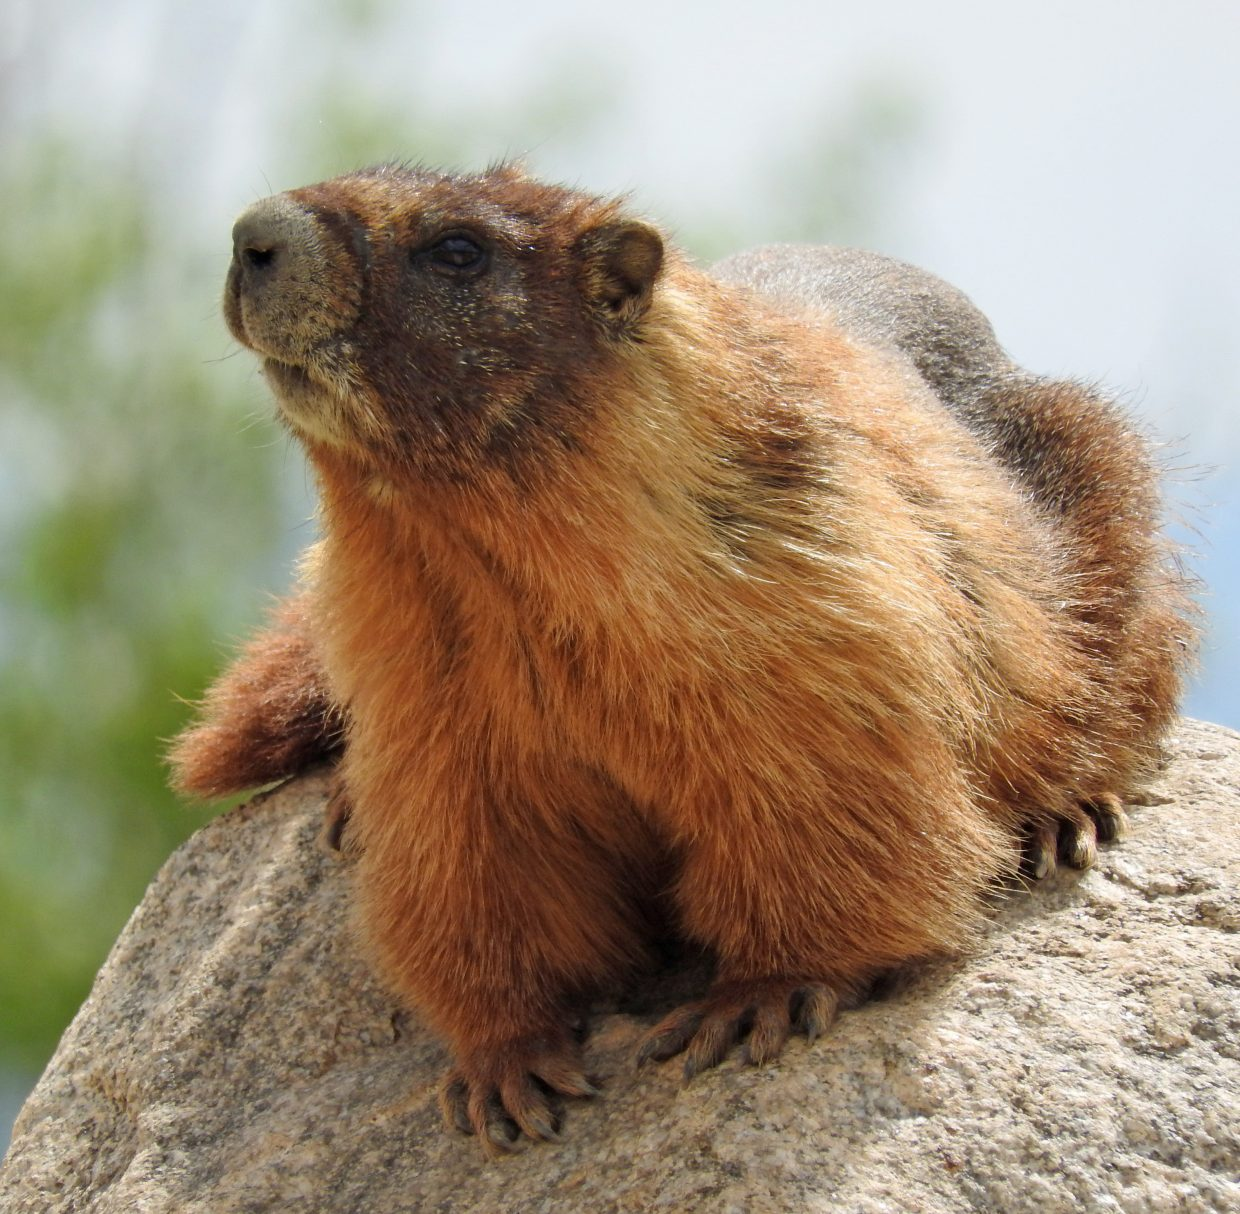 """""""An exciting day for wildlife on the Sanctuary Trail: Yellow-bellied Marmot sunning on a rock."""" Submitted by Tresa Moulton."""